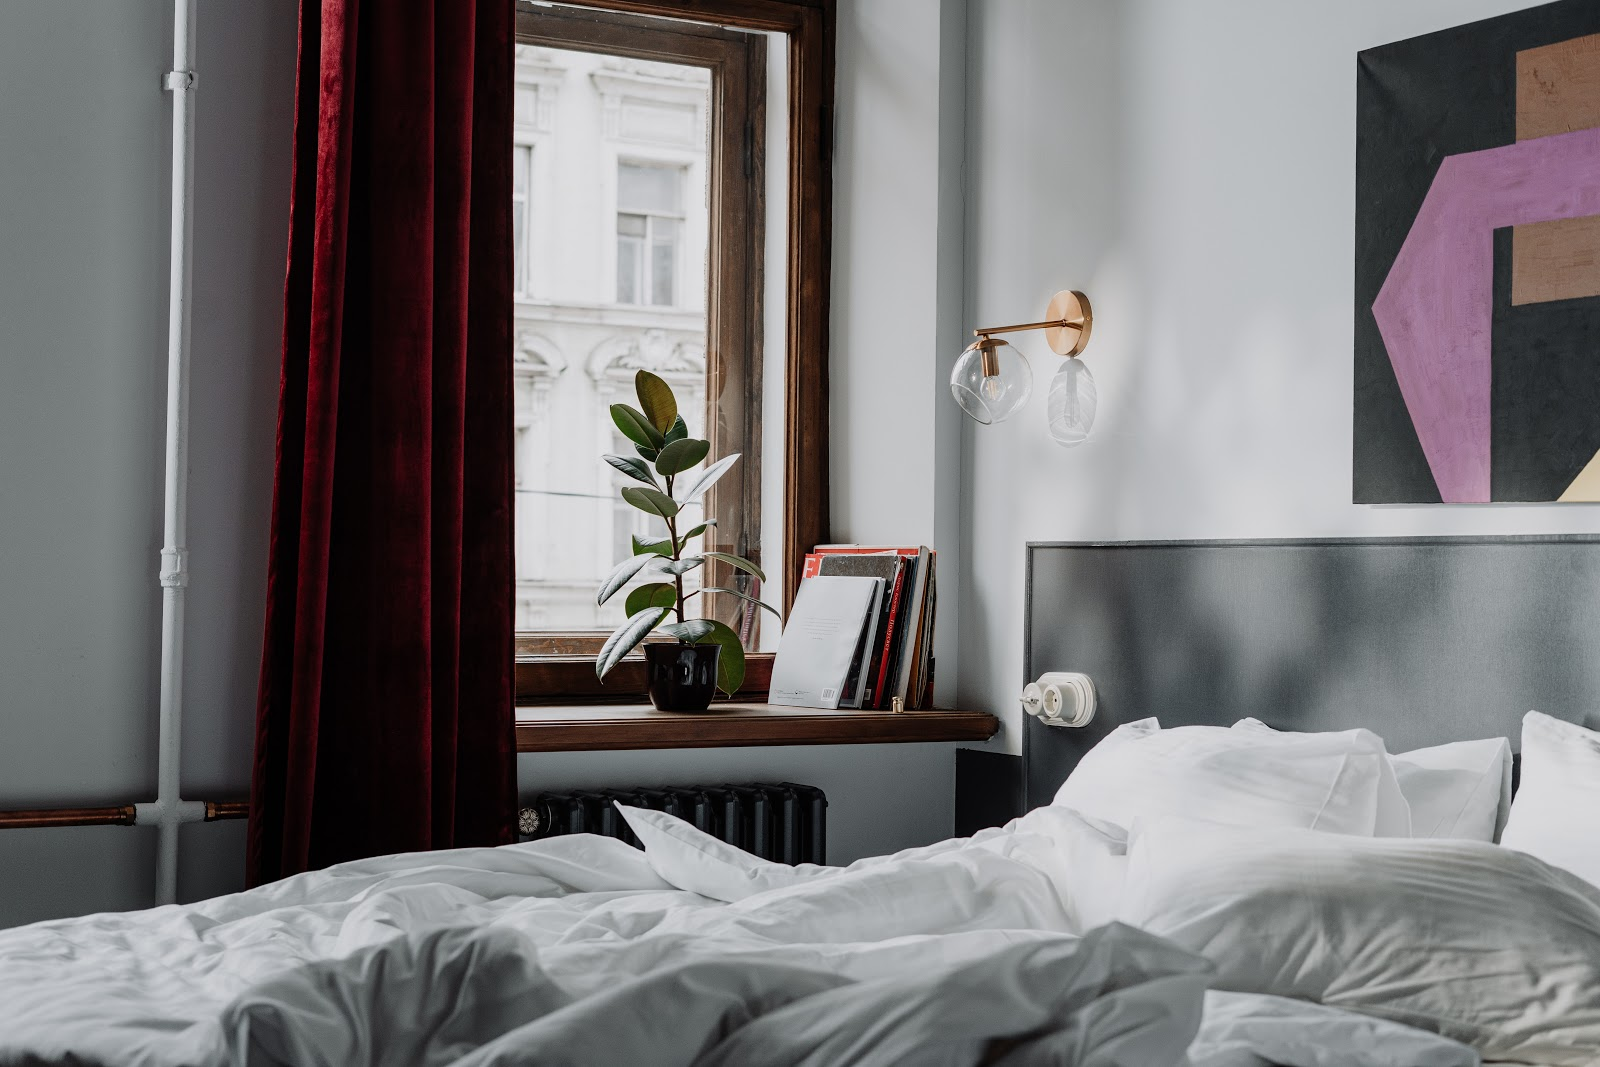 A bright, cozy bedroom with a plant in the window.